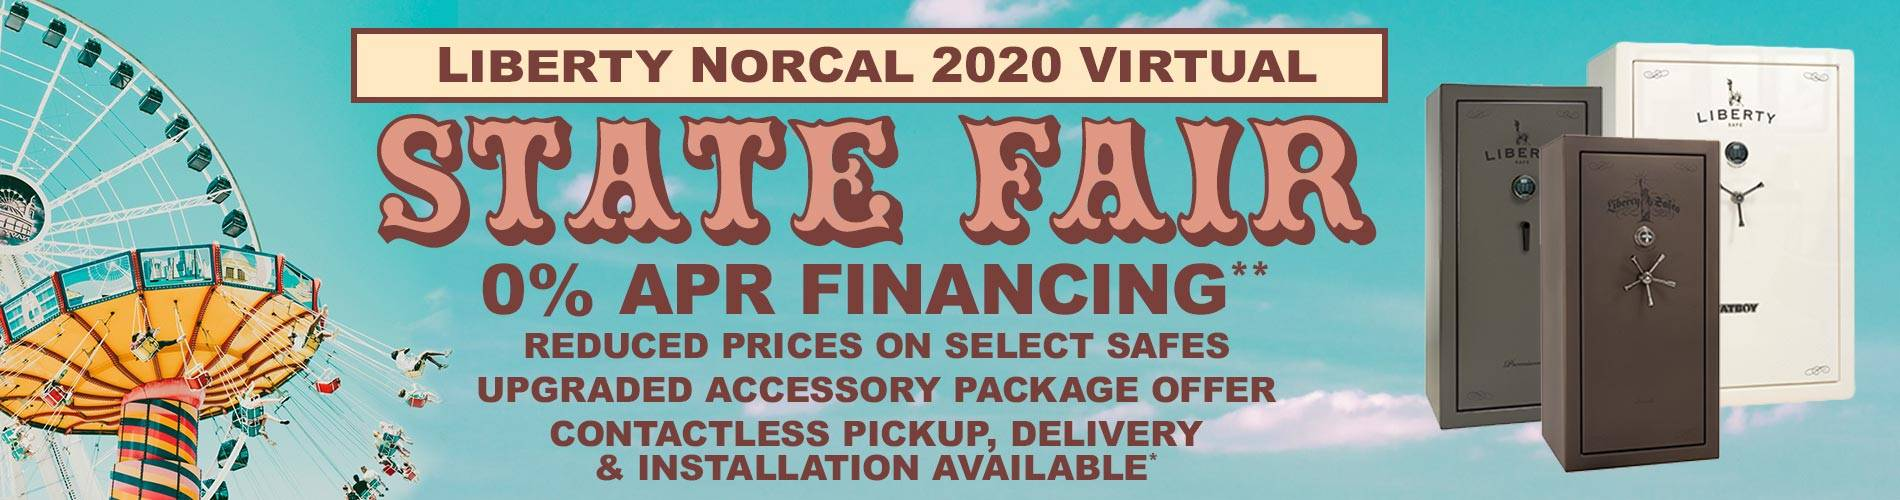 Liberty NorCal 2020 Virtual State Fair: 0% APR Financing, Reduced Prices on Select Safes, Upgraded Accessory Package Offer, Contactless Pickup, Delivery & Installation Available